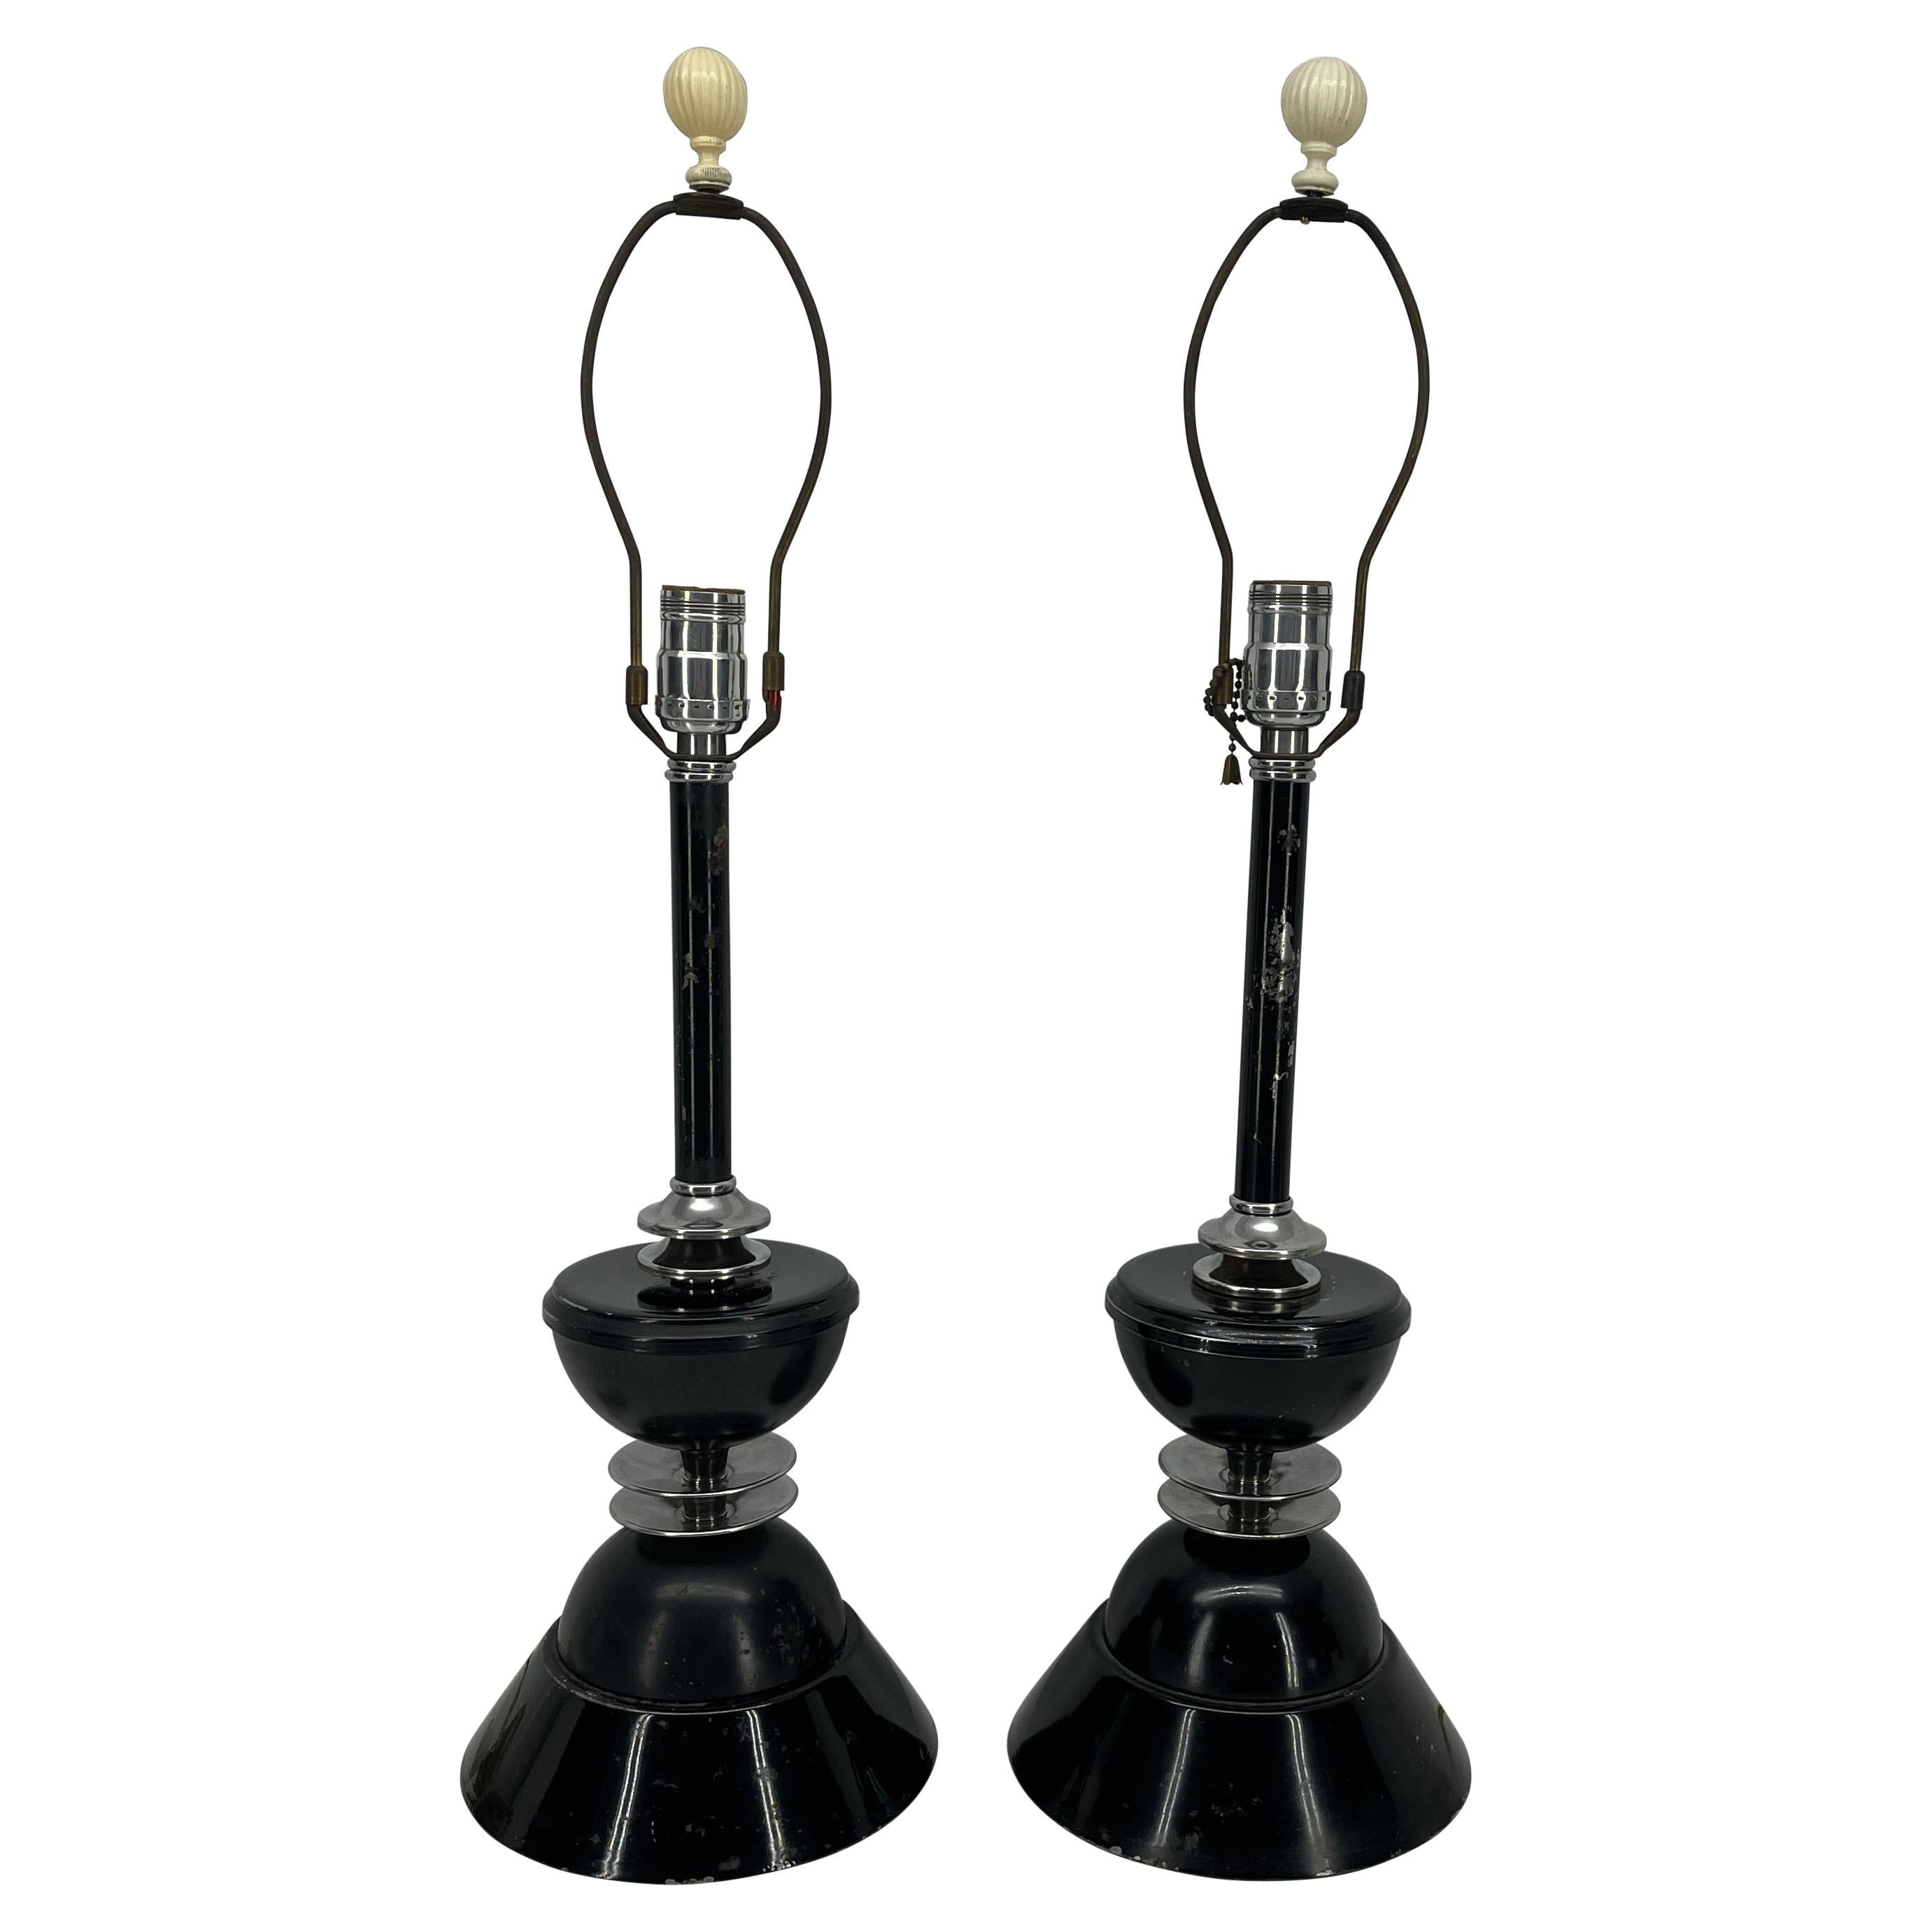 Pair of Early Mid-Century Modern Black Toleware Chrome Lamps